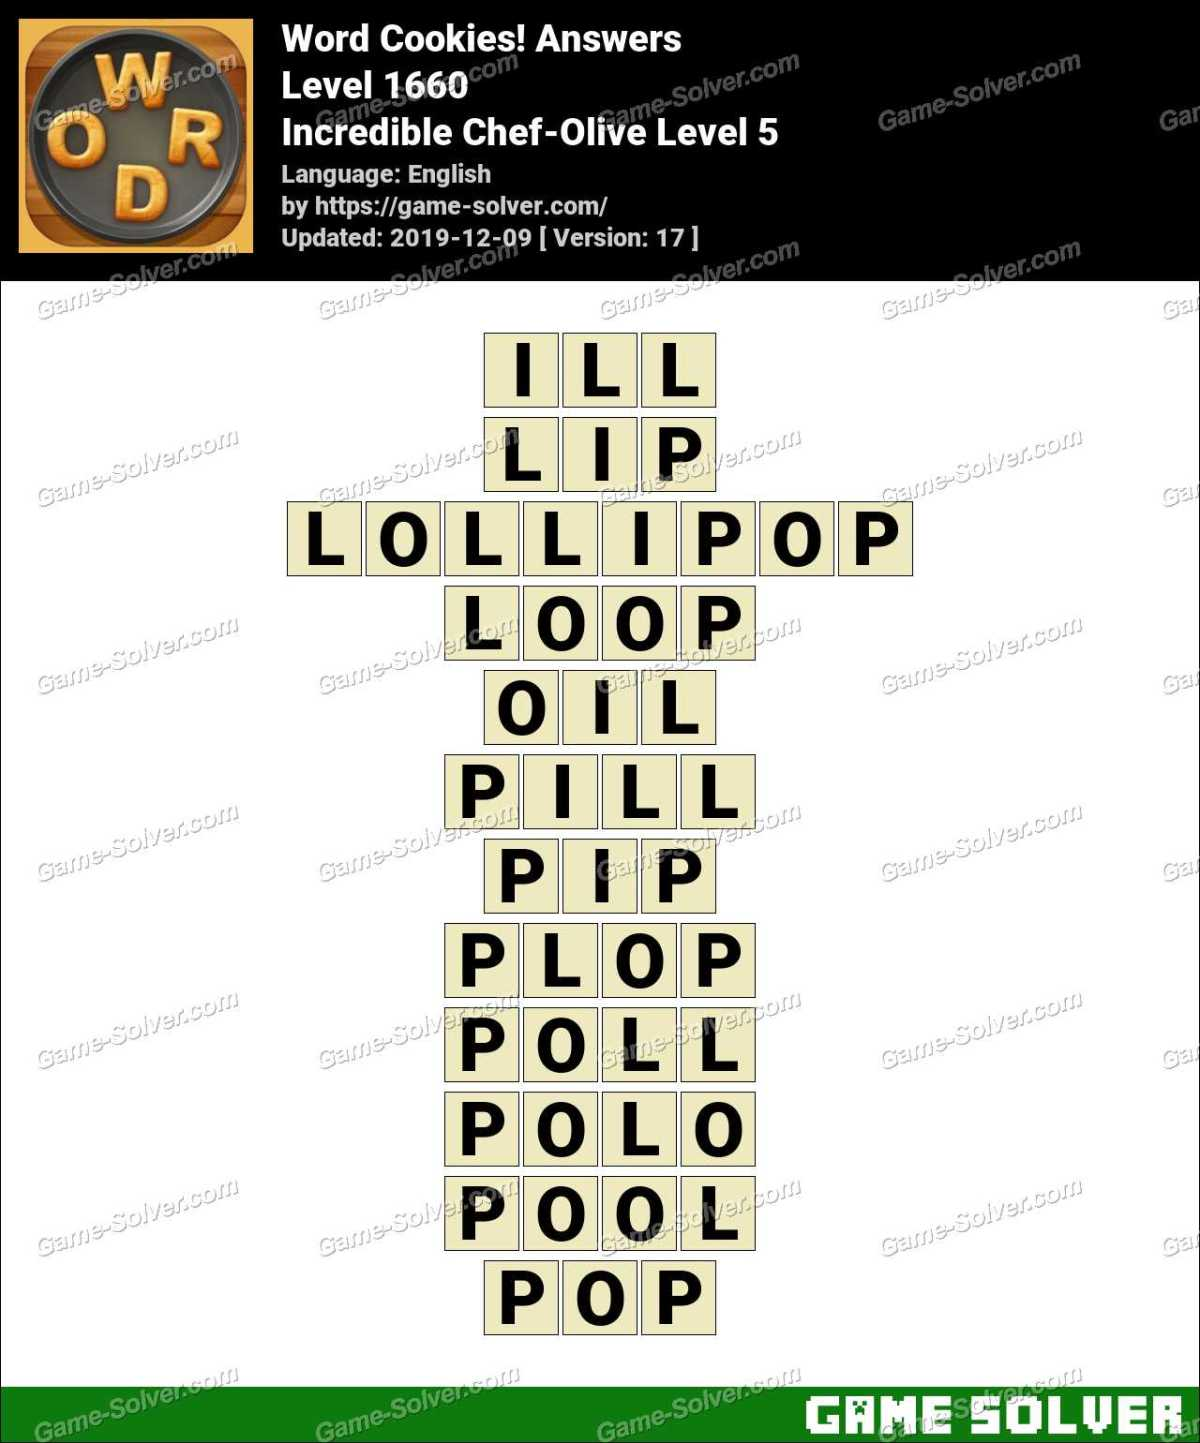 Word Cookies Incredible Chef-Olive Level 5 Answers